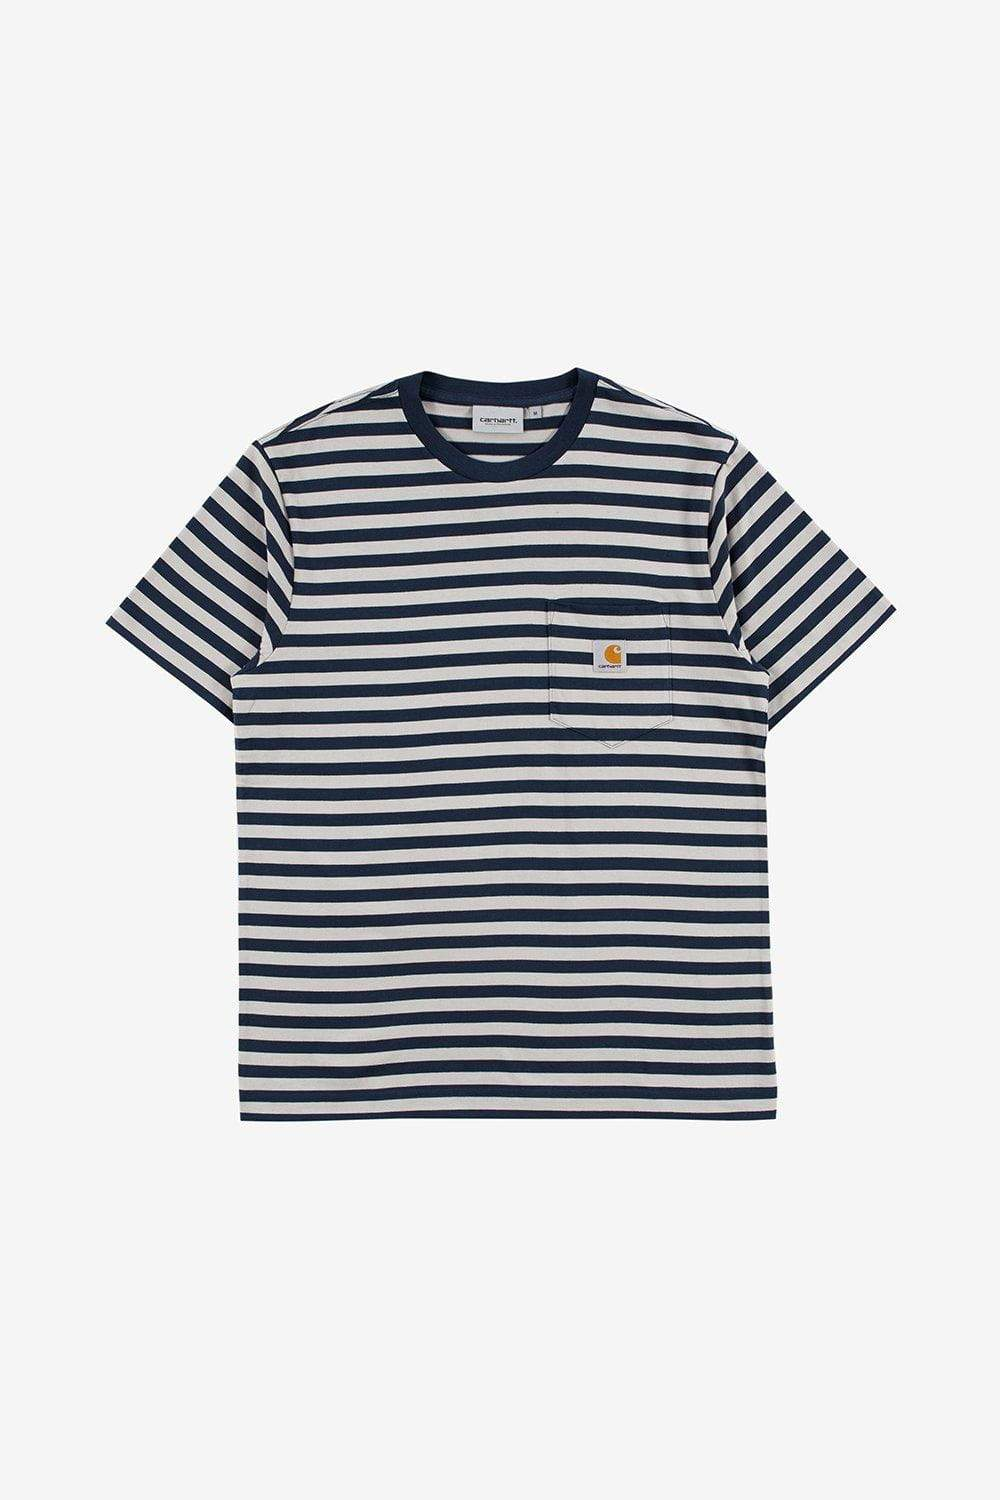 Carhartt WIP Apparel Parker Pocket T-Shirt